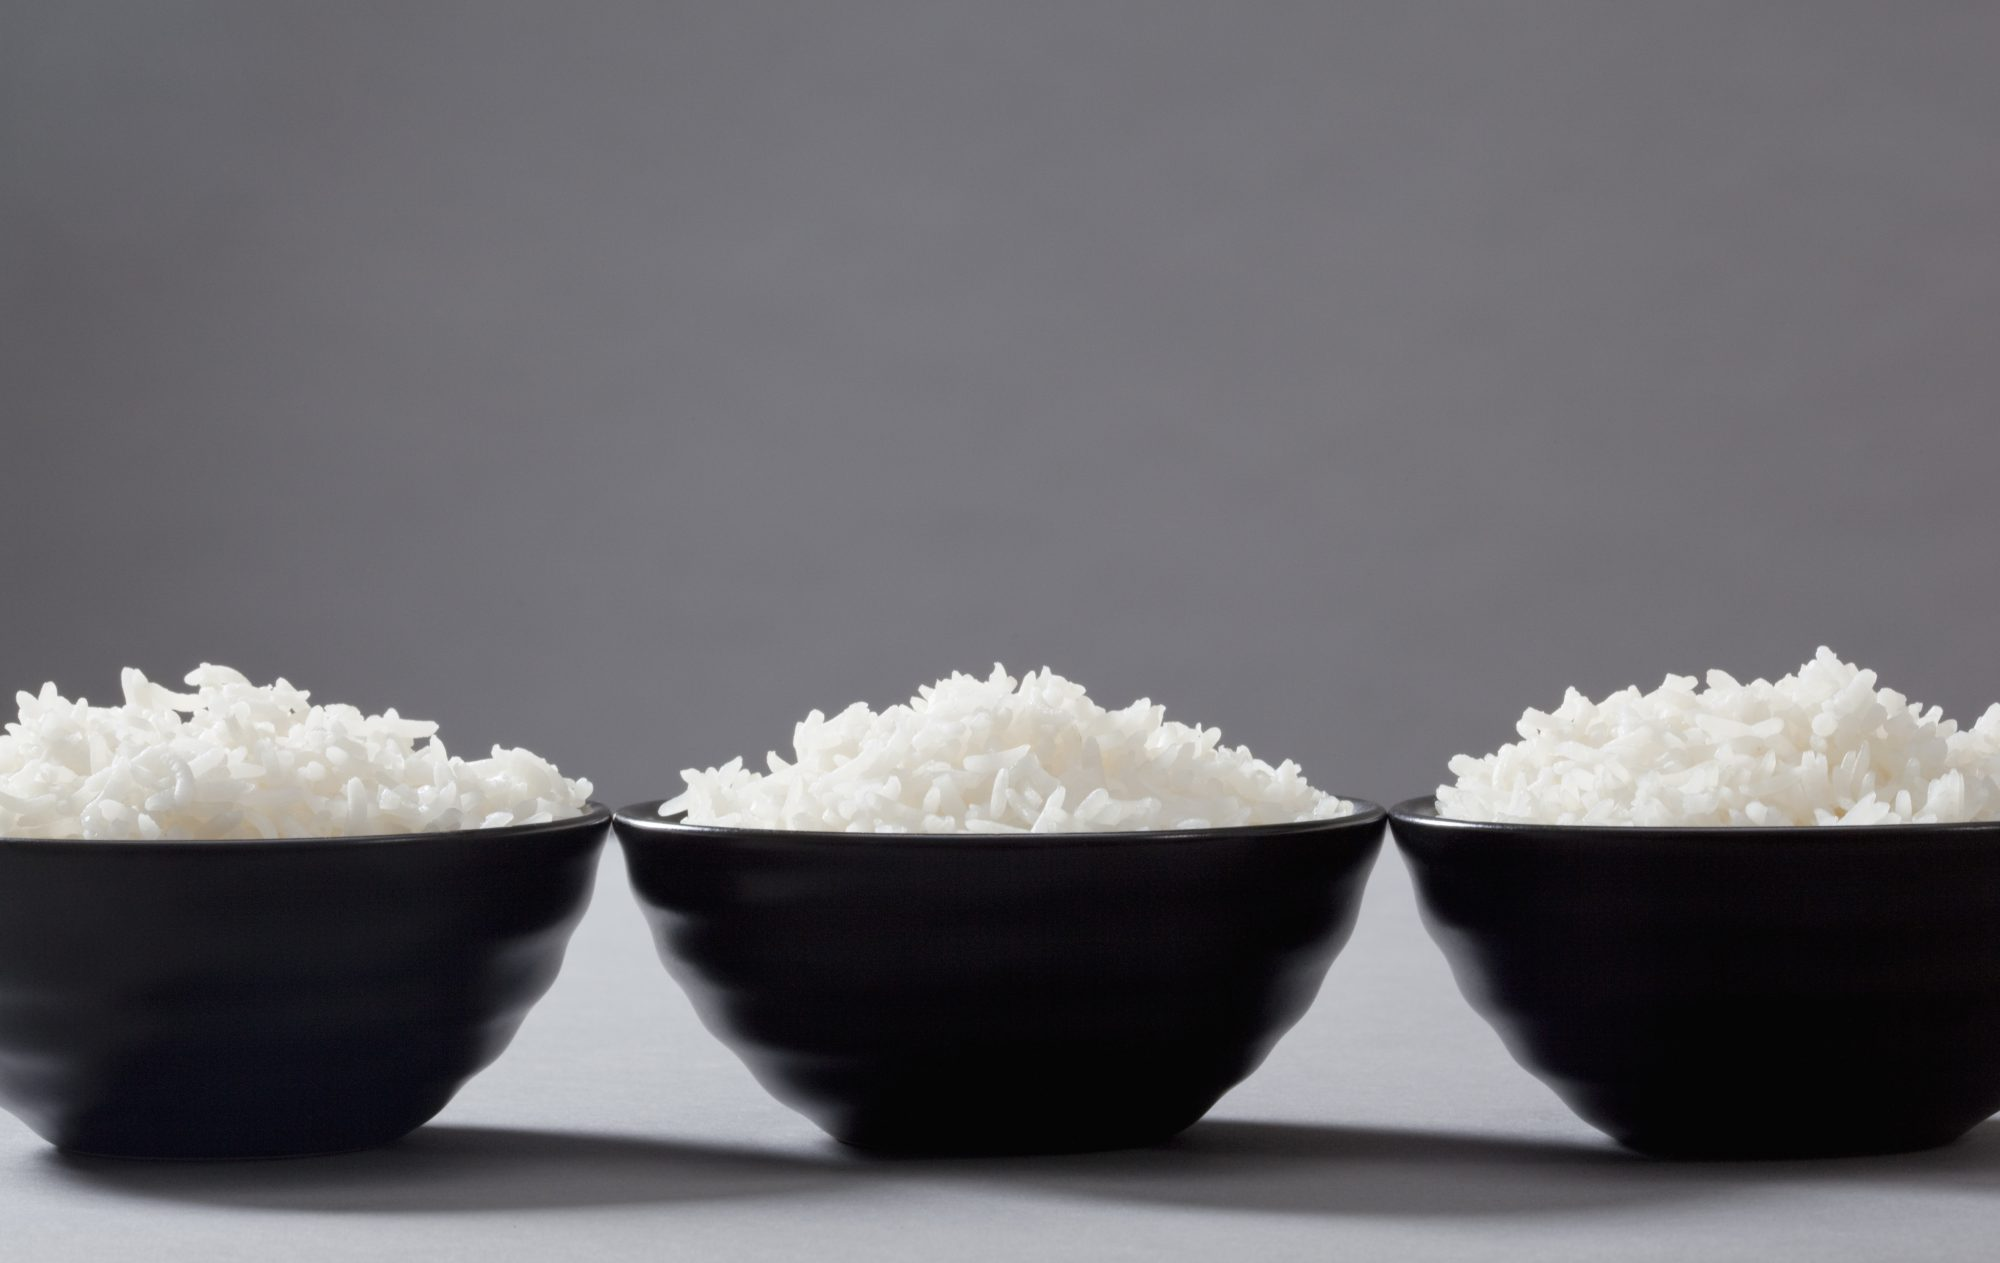 Piss in the bowl of rice recommend you